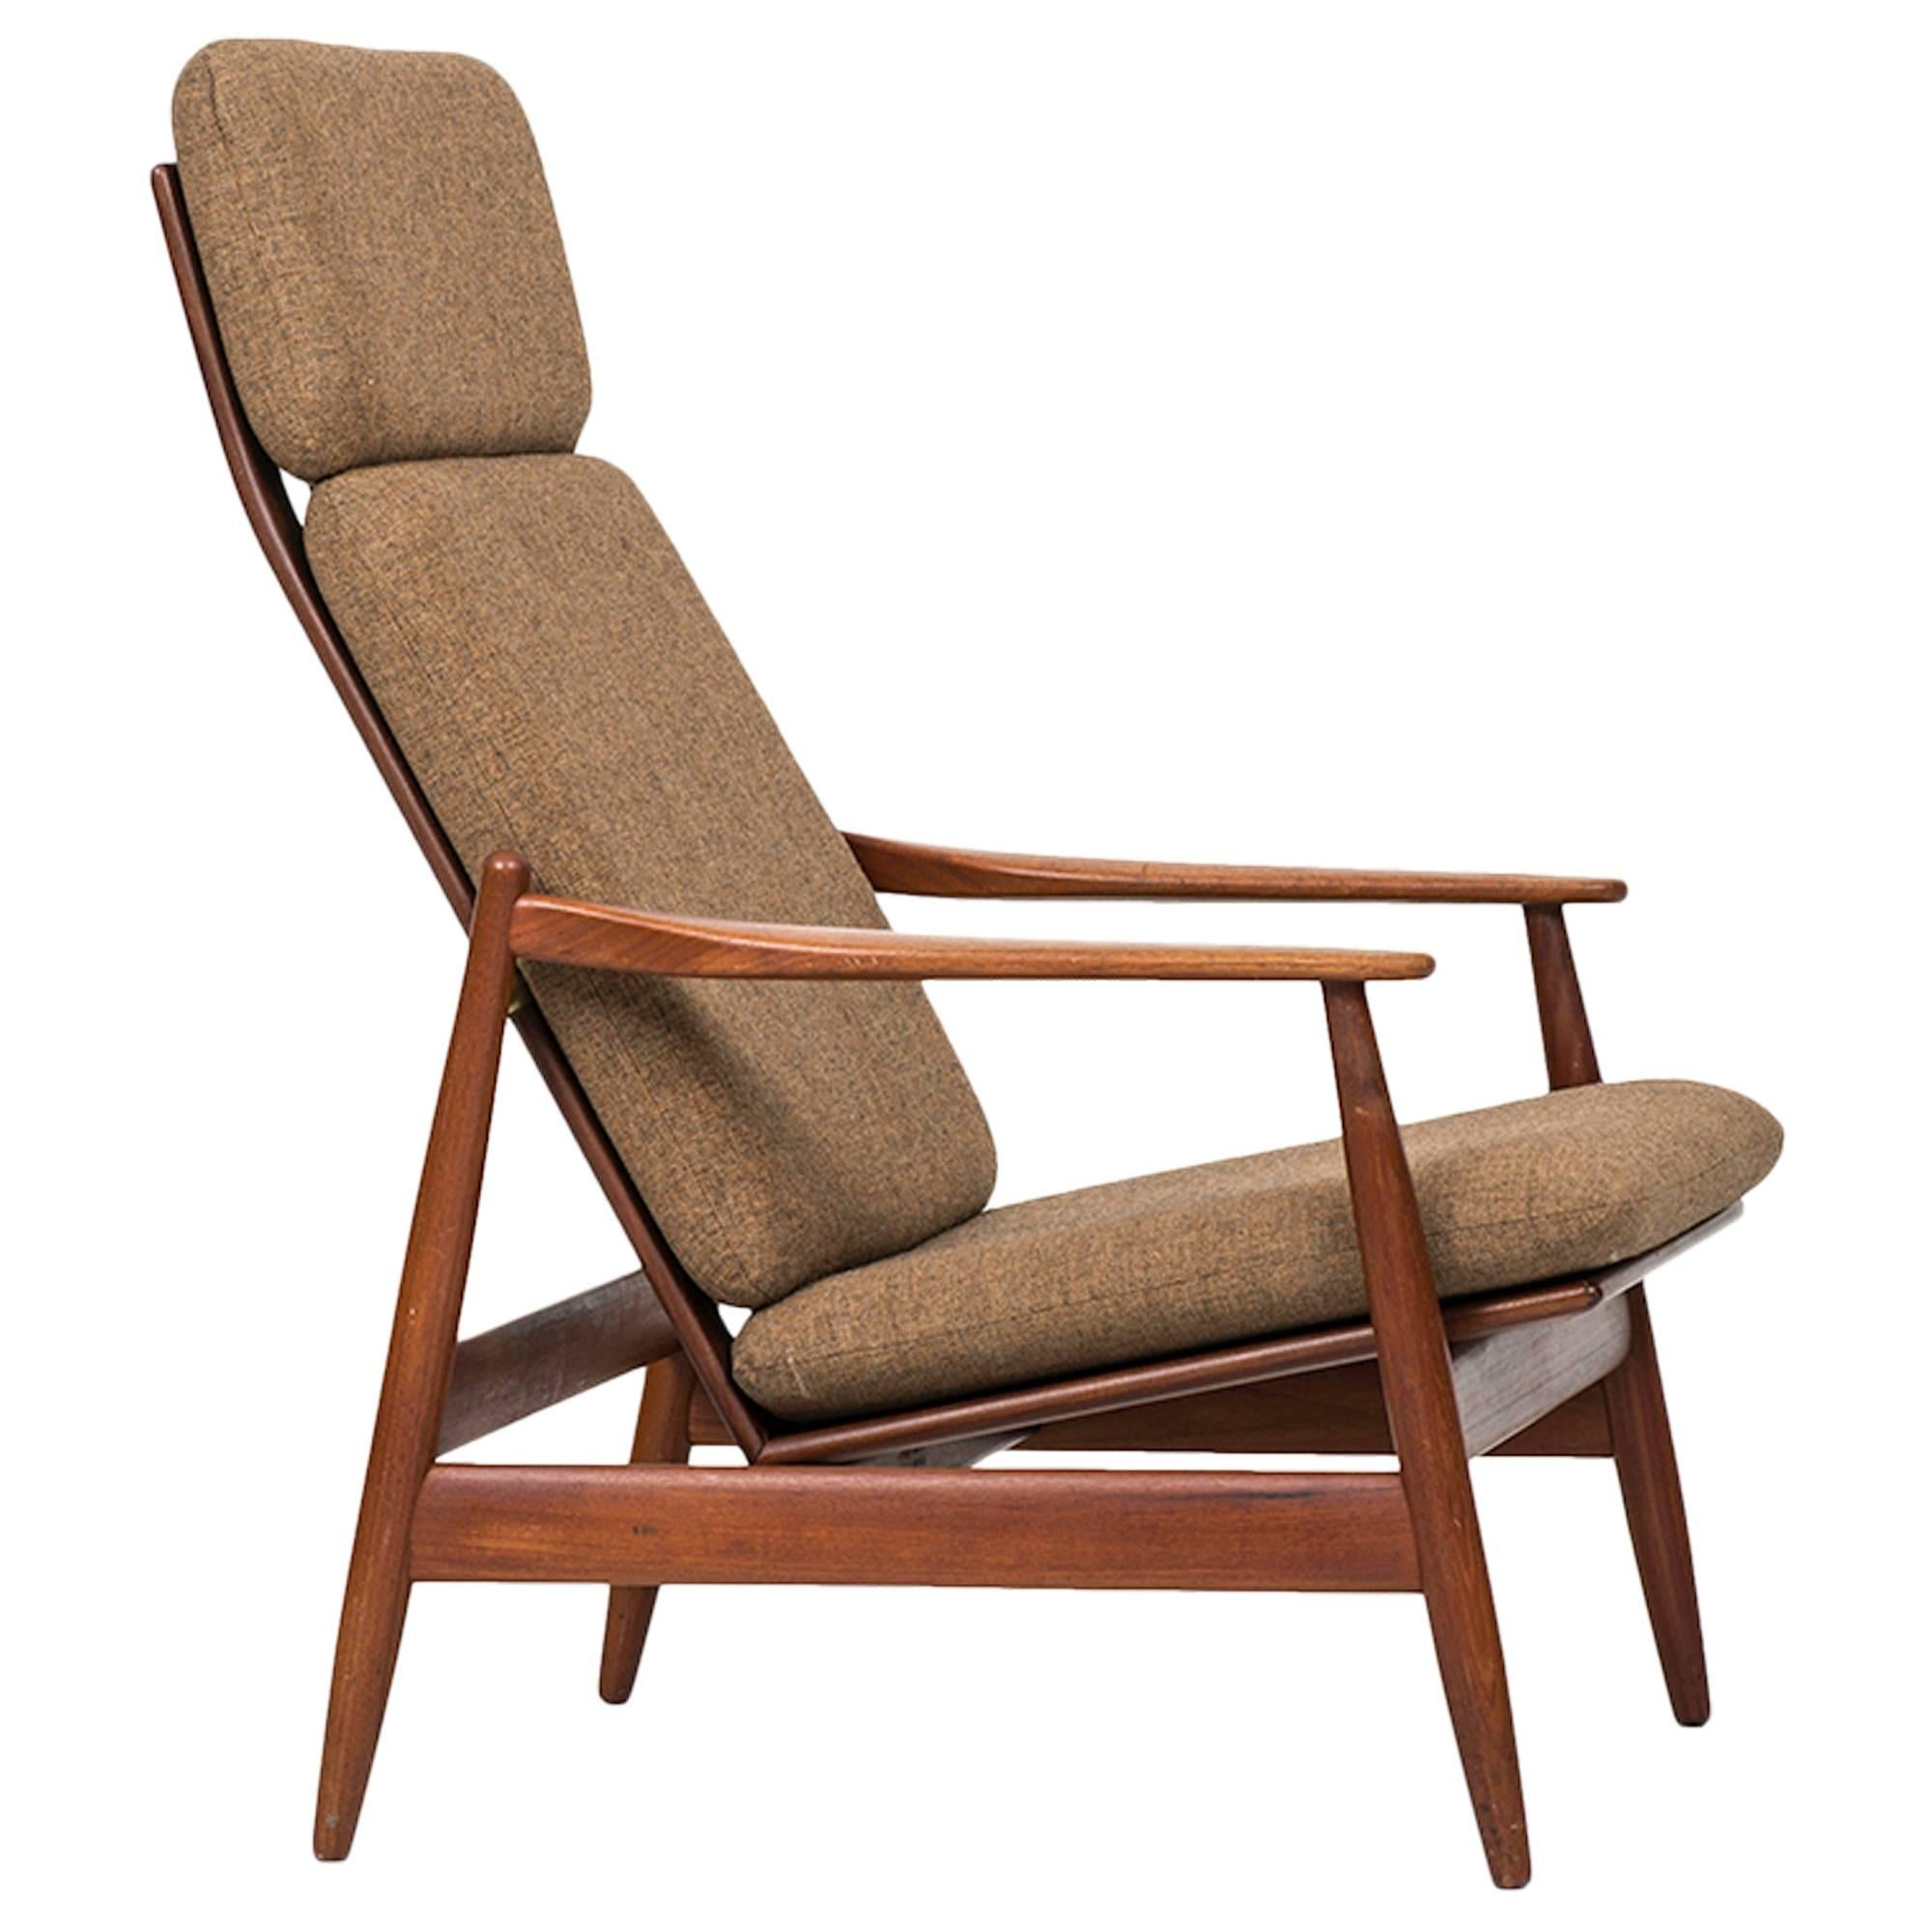 Poul Volther Easy Chair Model 340 by Frem Røjle in Denmark